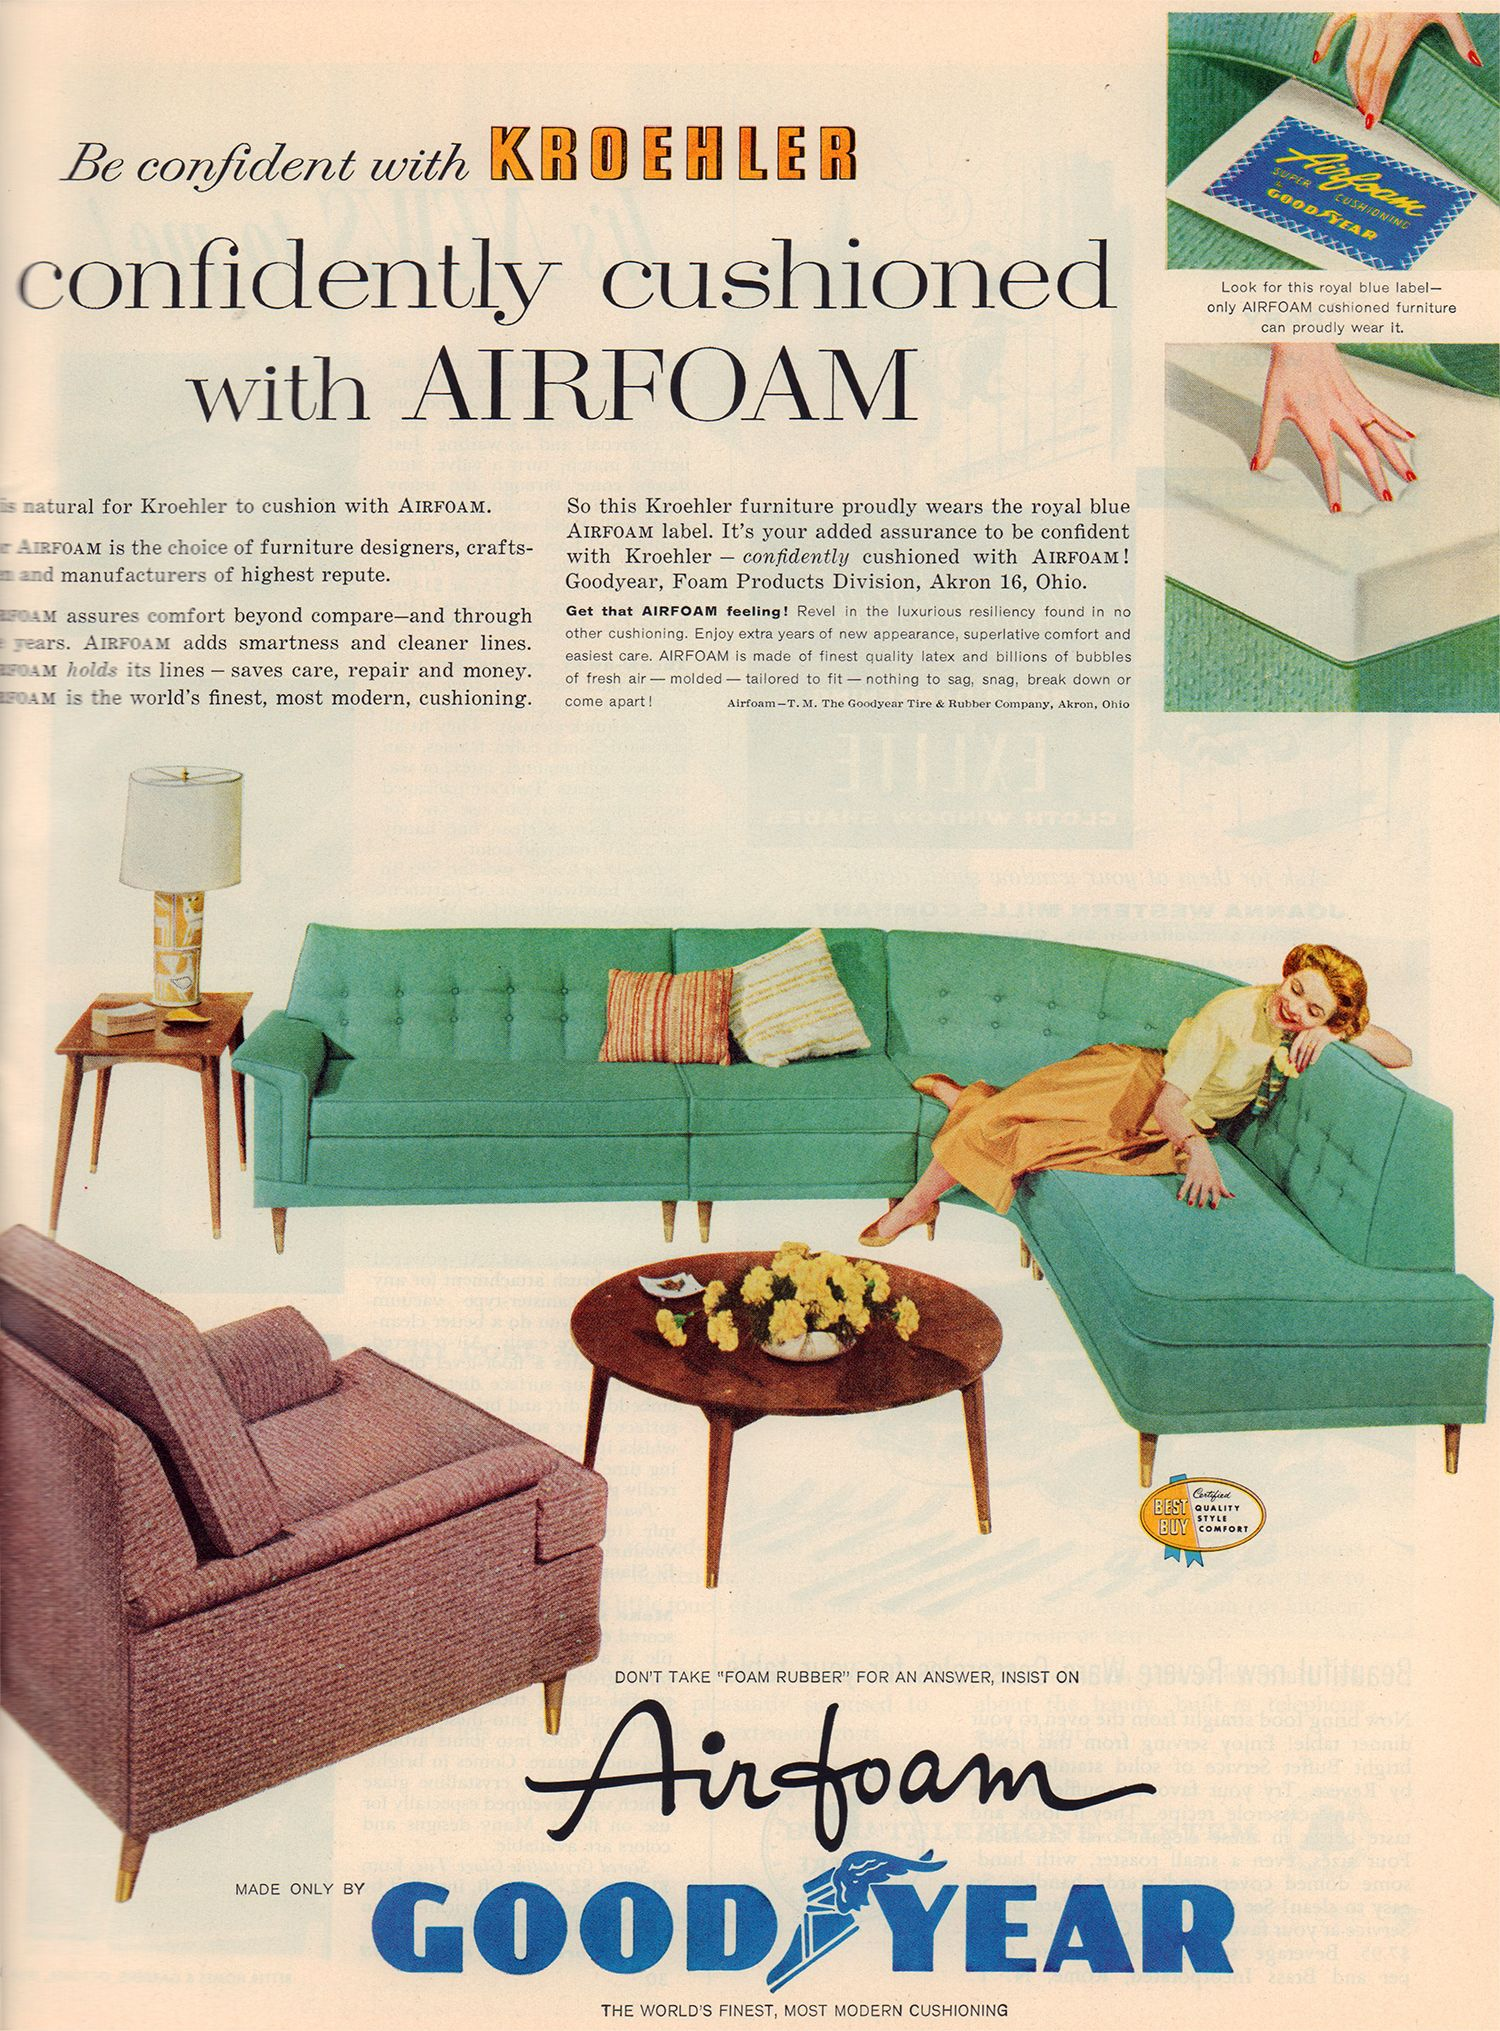 Pleasant Valley Living: A Look Inside A Mid Century Home Magazine   Flashbak